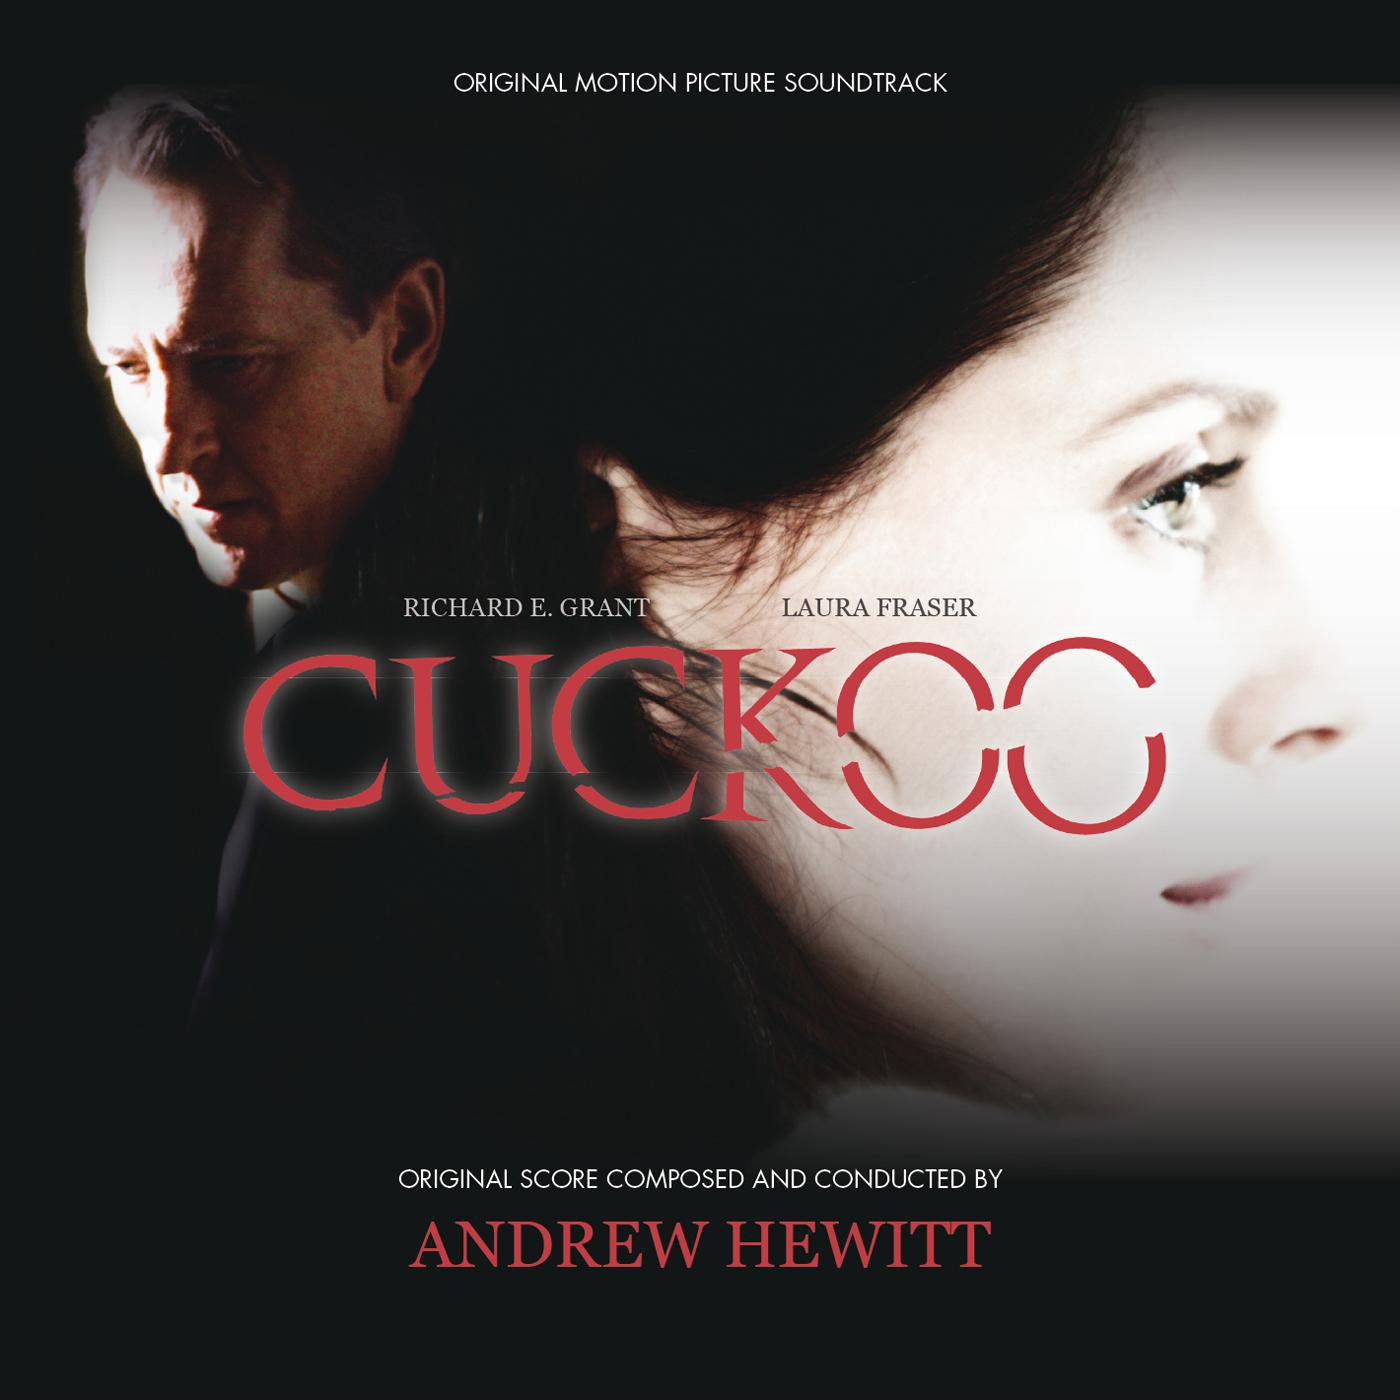 Cuckoo (Original Motion Picture Soundtrack)